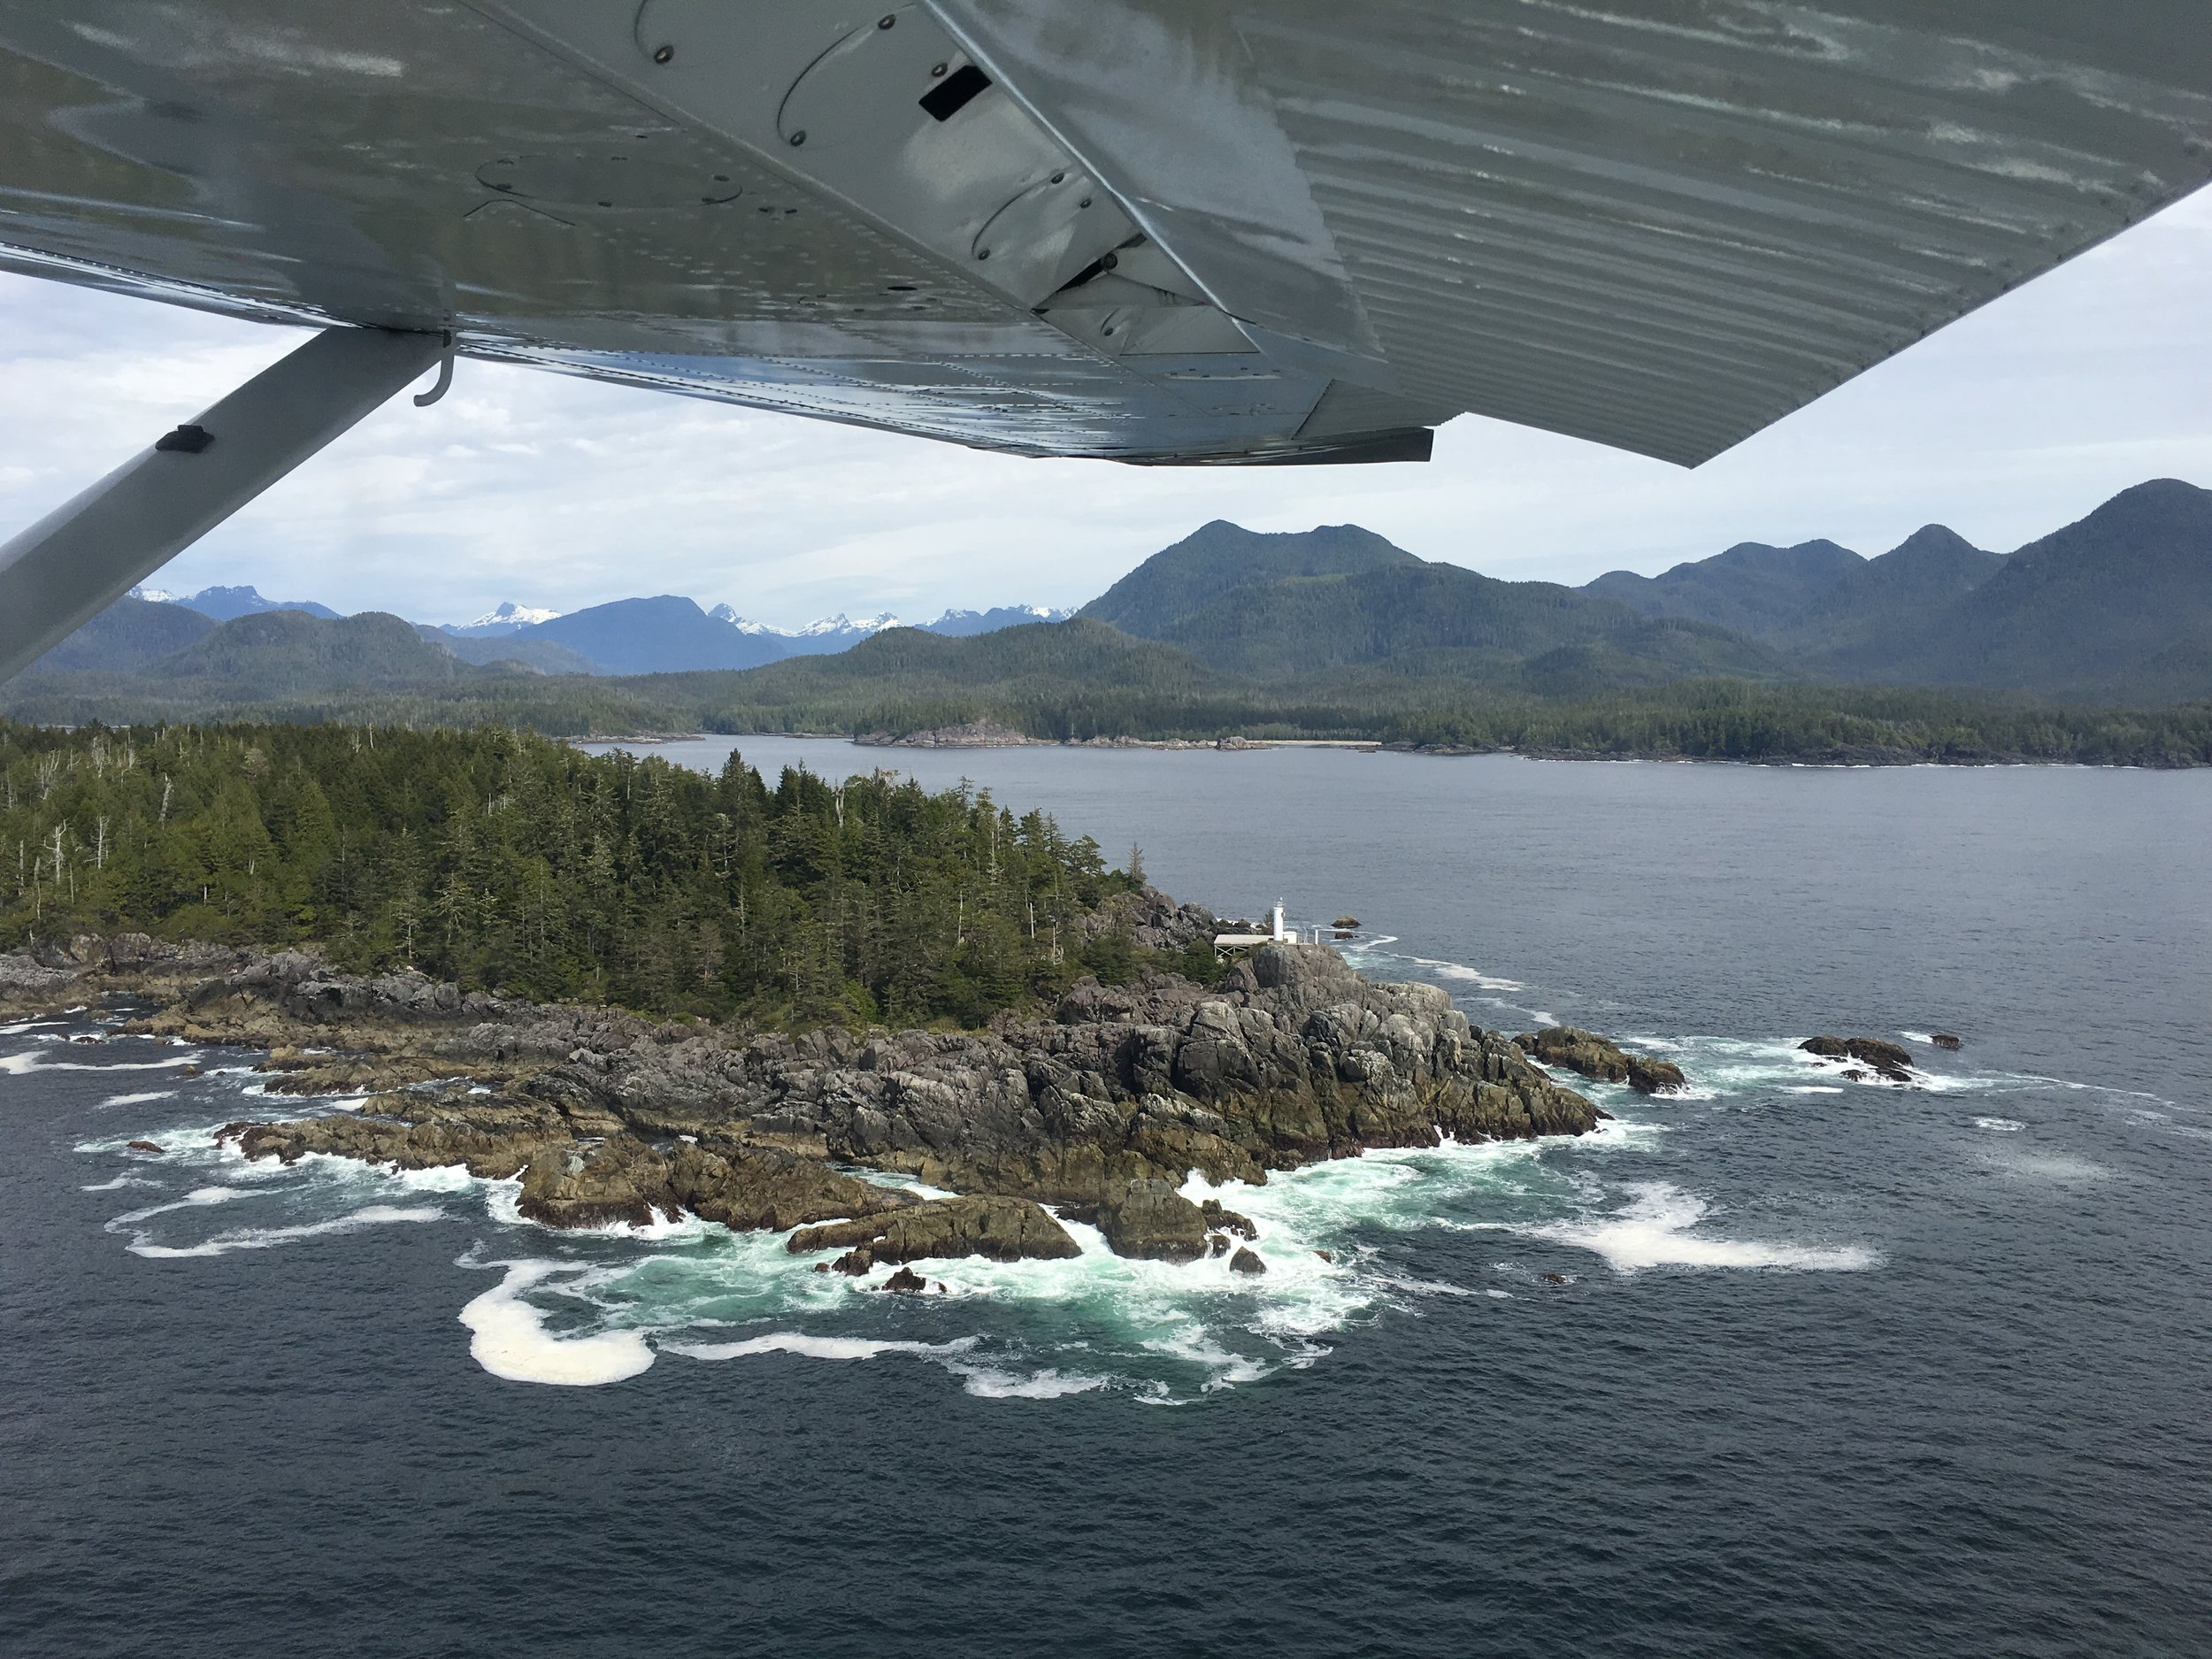 Entering Clayoquot sound by float plane  Photo: Zach Husted